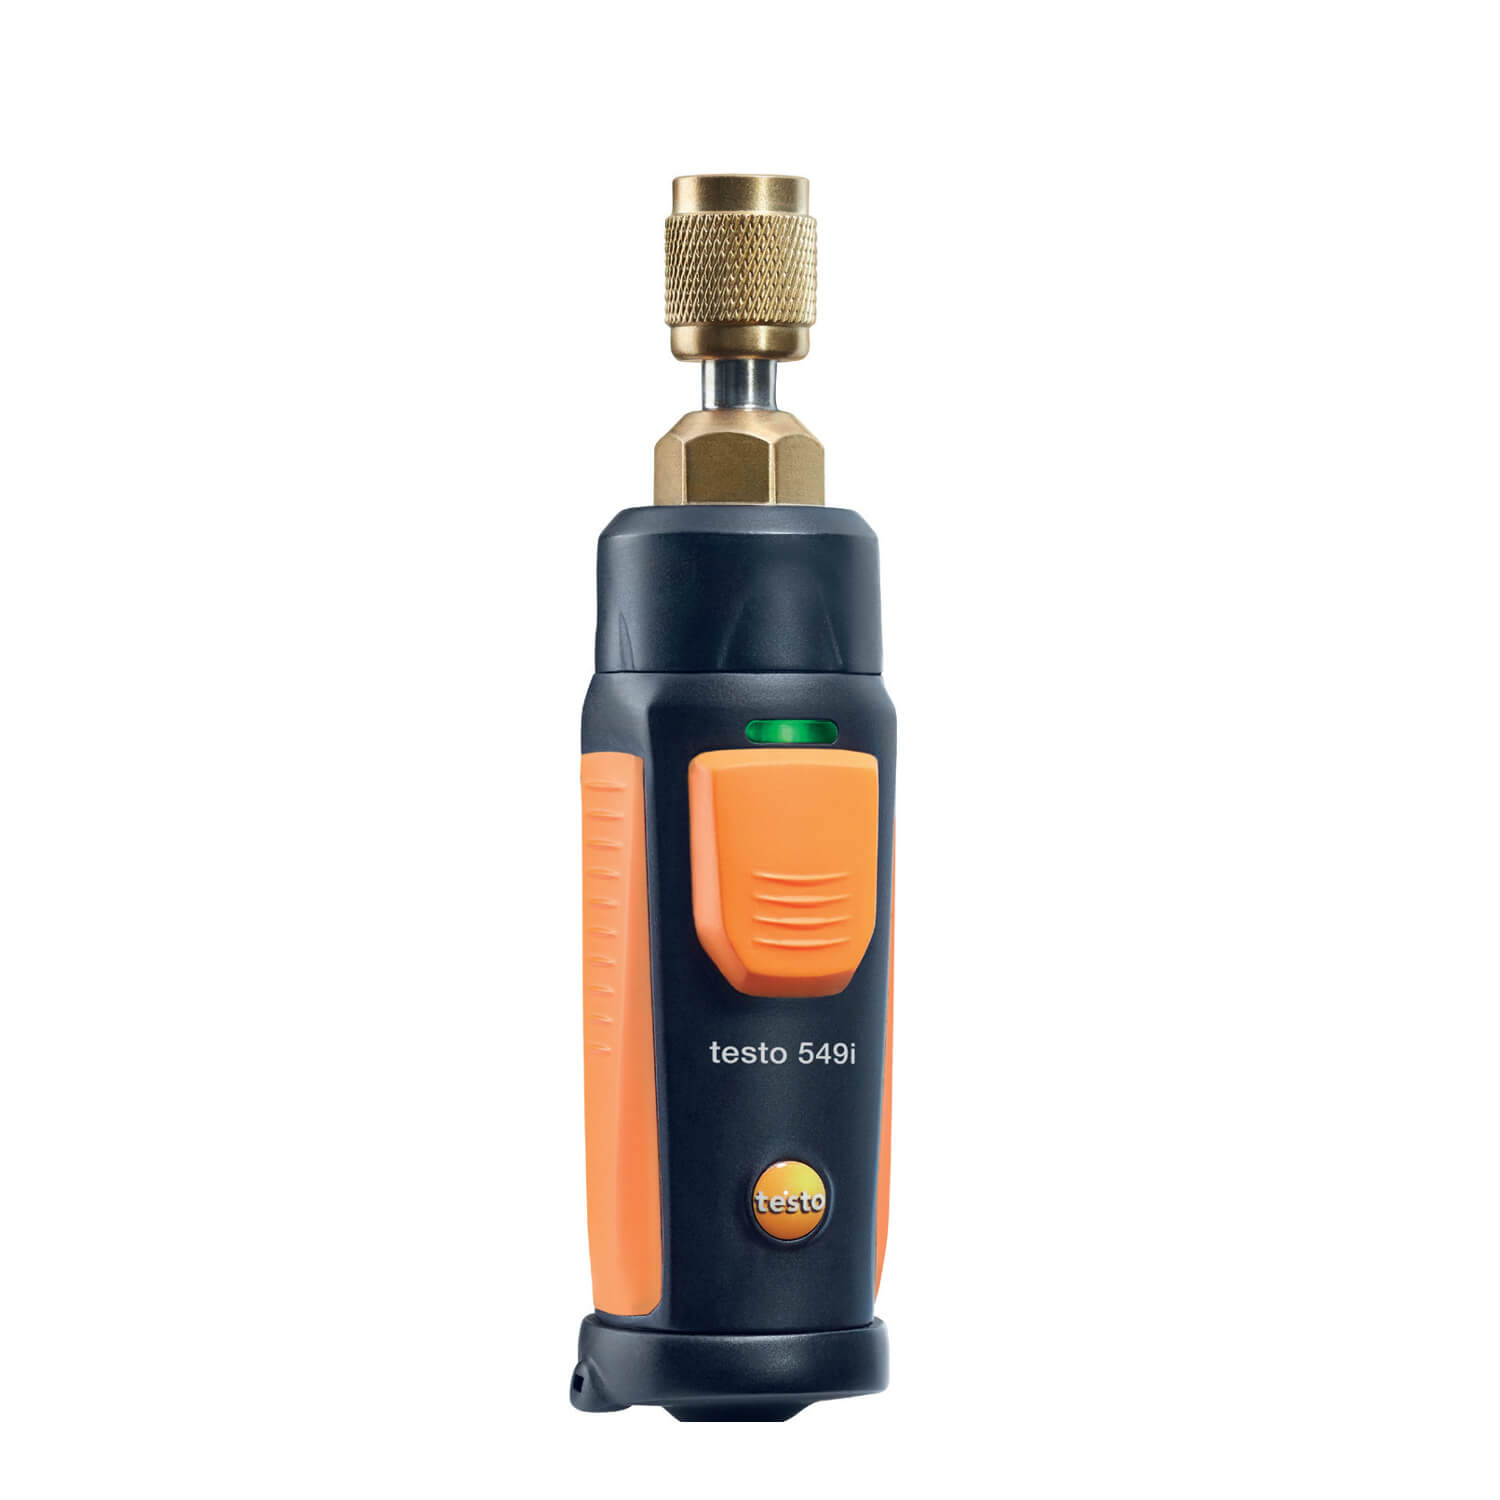 Testo 549i Wireless Refrigeration Pressure Probe with Smart Bluetooth Technology